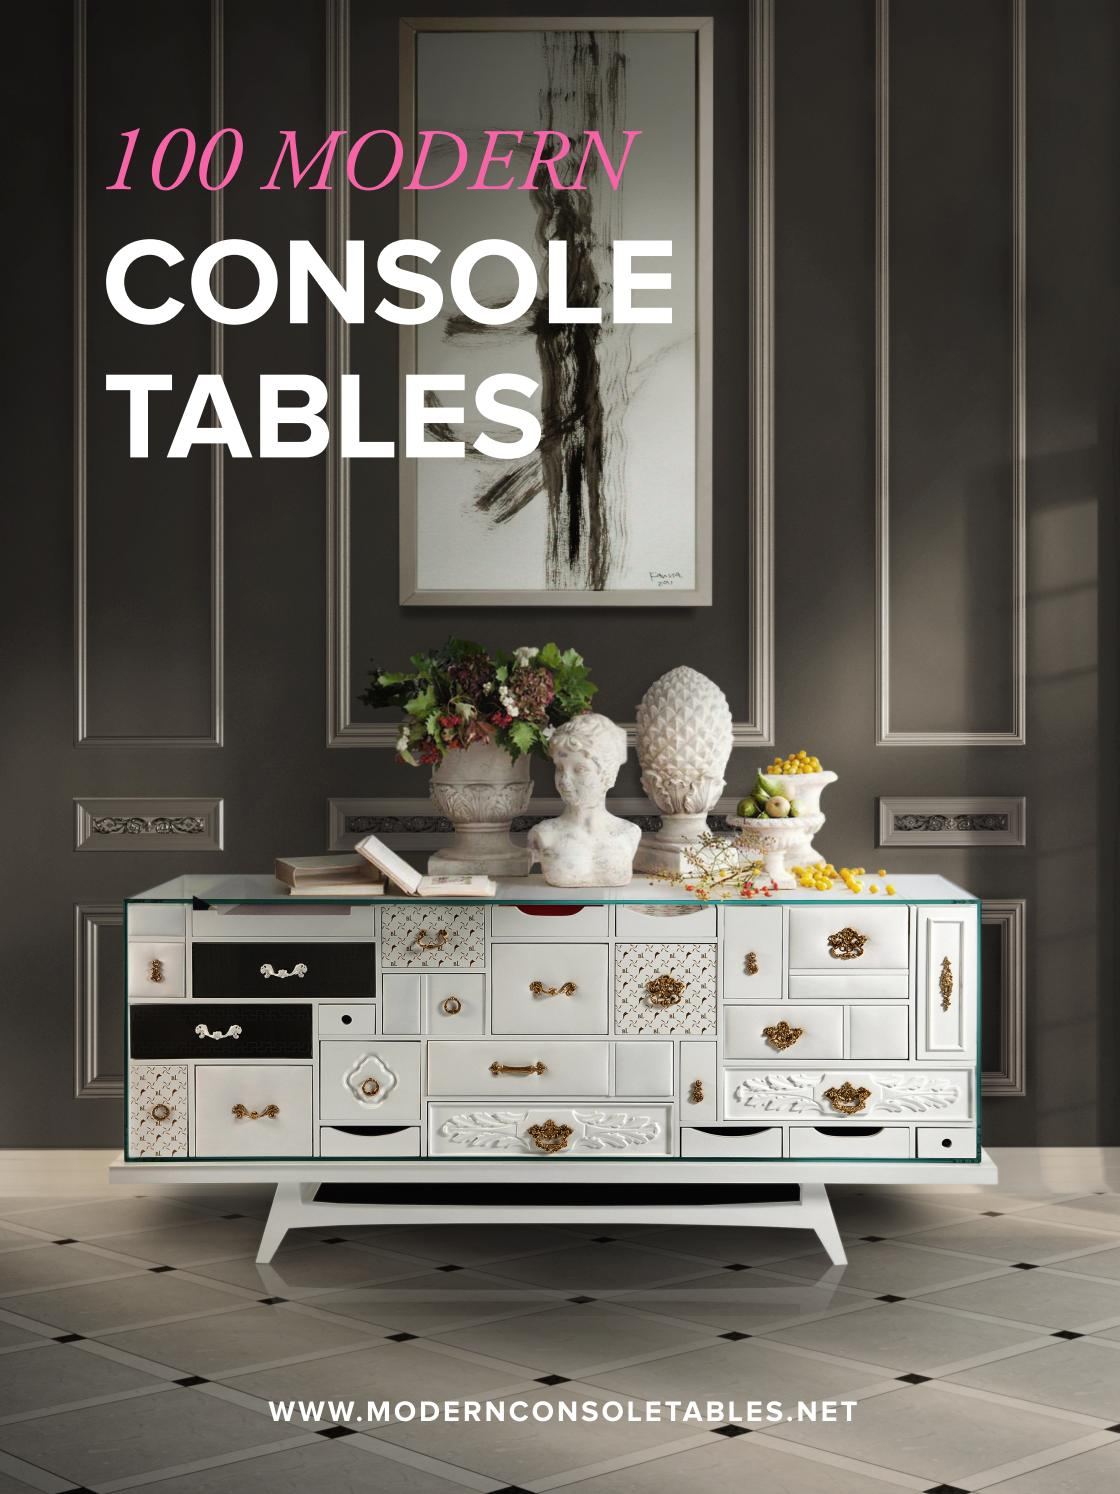 100 Modern Design Console Tables By Design Limited Edition Issuu